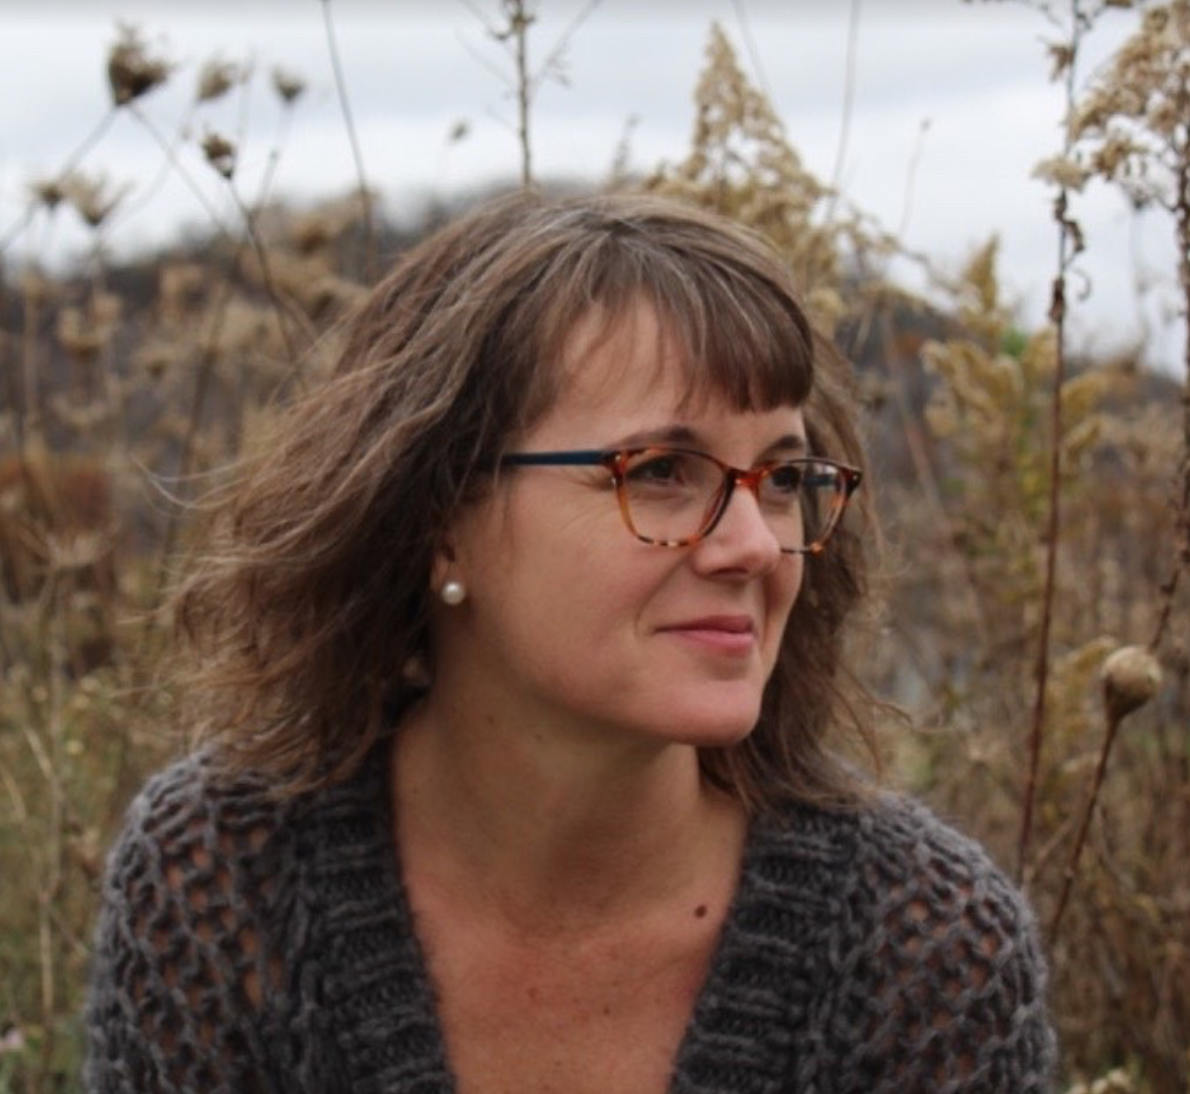 Kelly R. Samuels - Kelly R. Samuels is a Pushcart Prize and Best of the Net nominee. She is the author of the chapbook, Words Some of Us Rarely Use (Unsolicited Press, 2019). Her poems have appeared or are forthcoming in numerous journals, including Salt Hill, The Carolina Quarterly, Sweet Tree Review, Permafrost, and RHINO. She lives in the upper Midwest.Headshot: Kate Marguerite Netwal